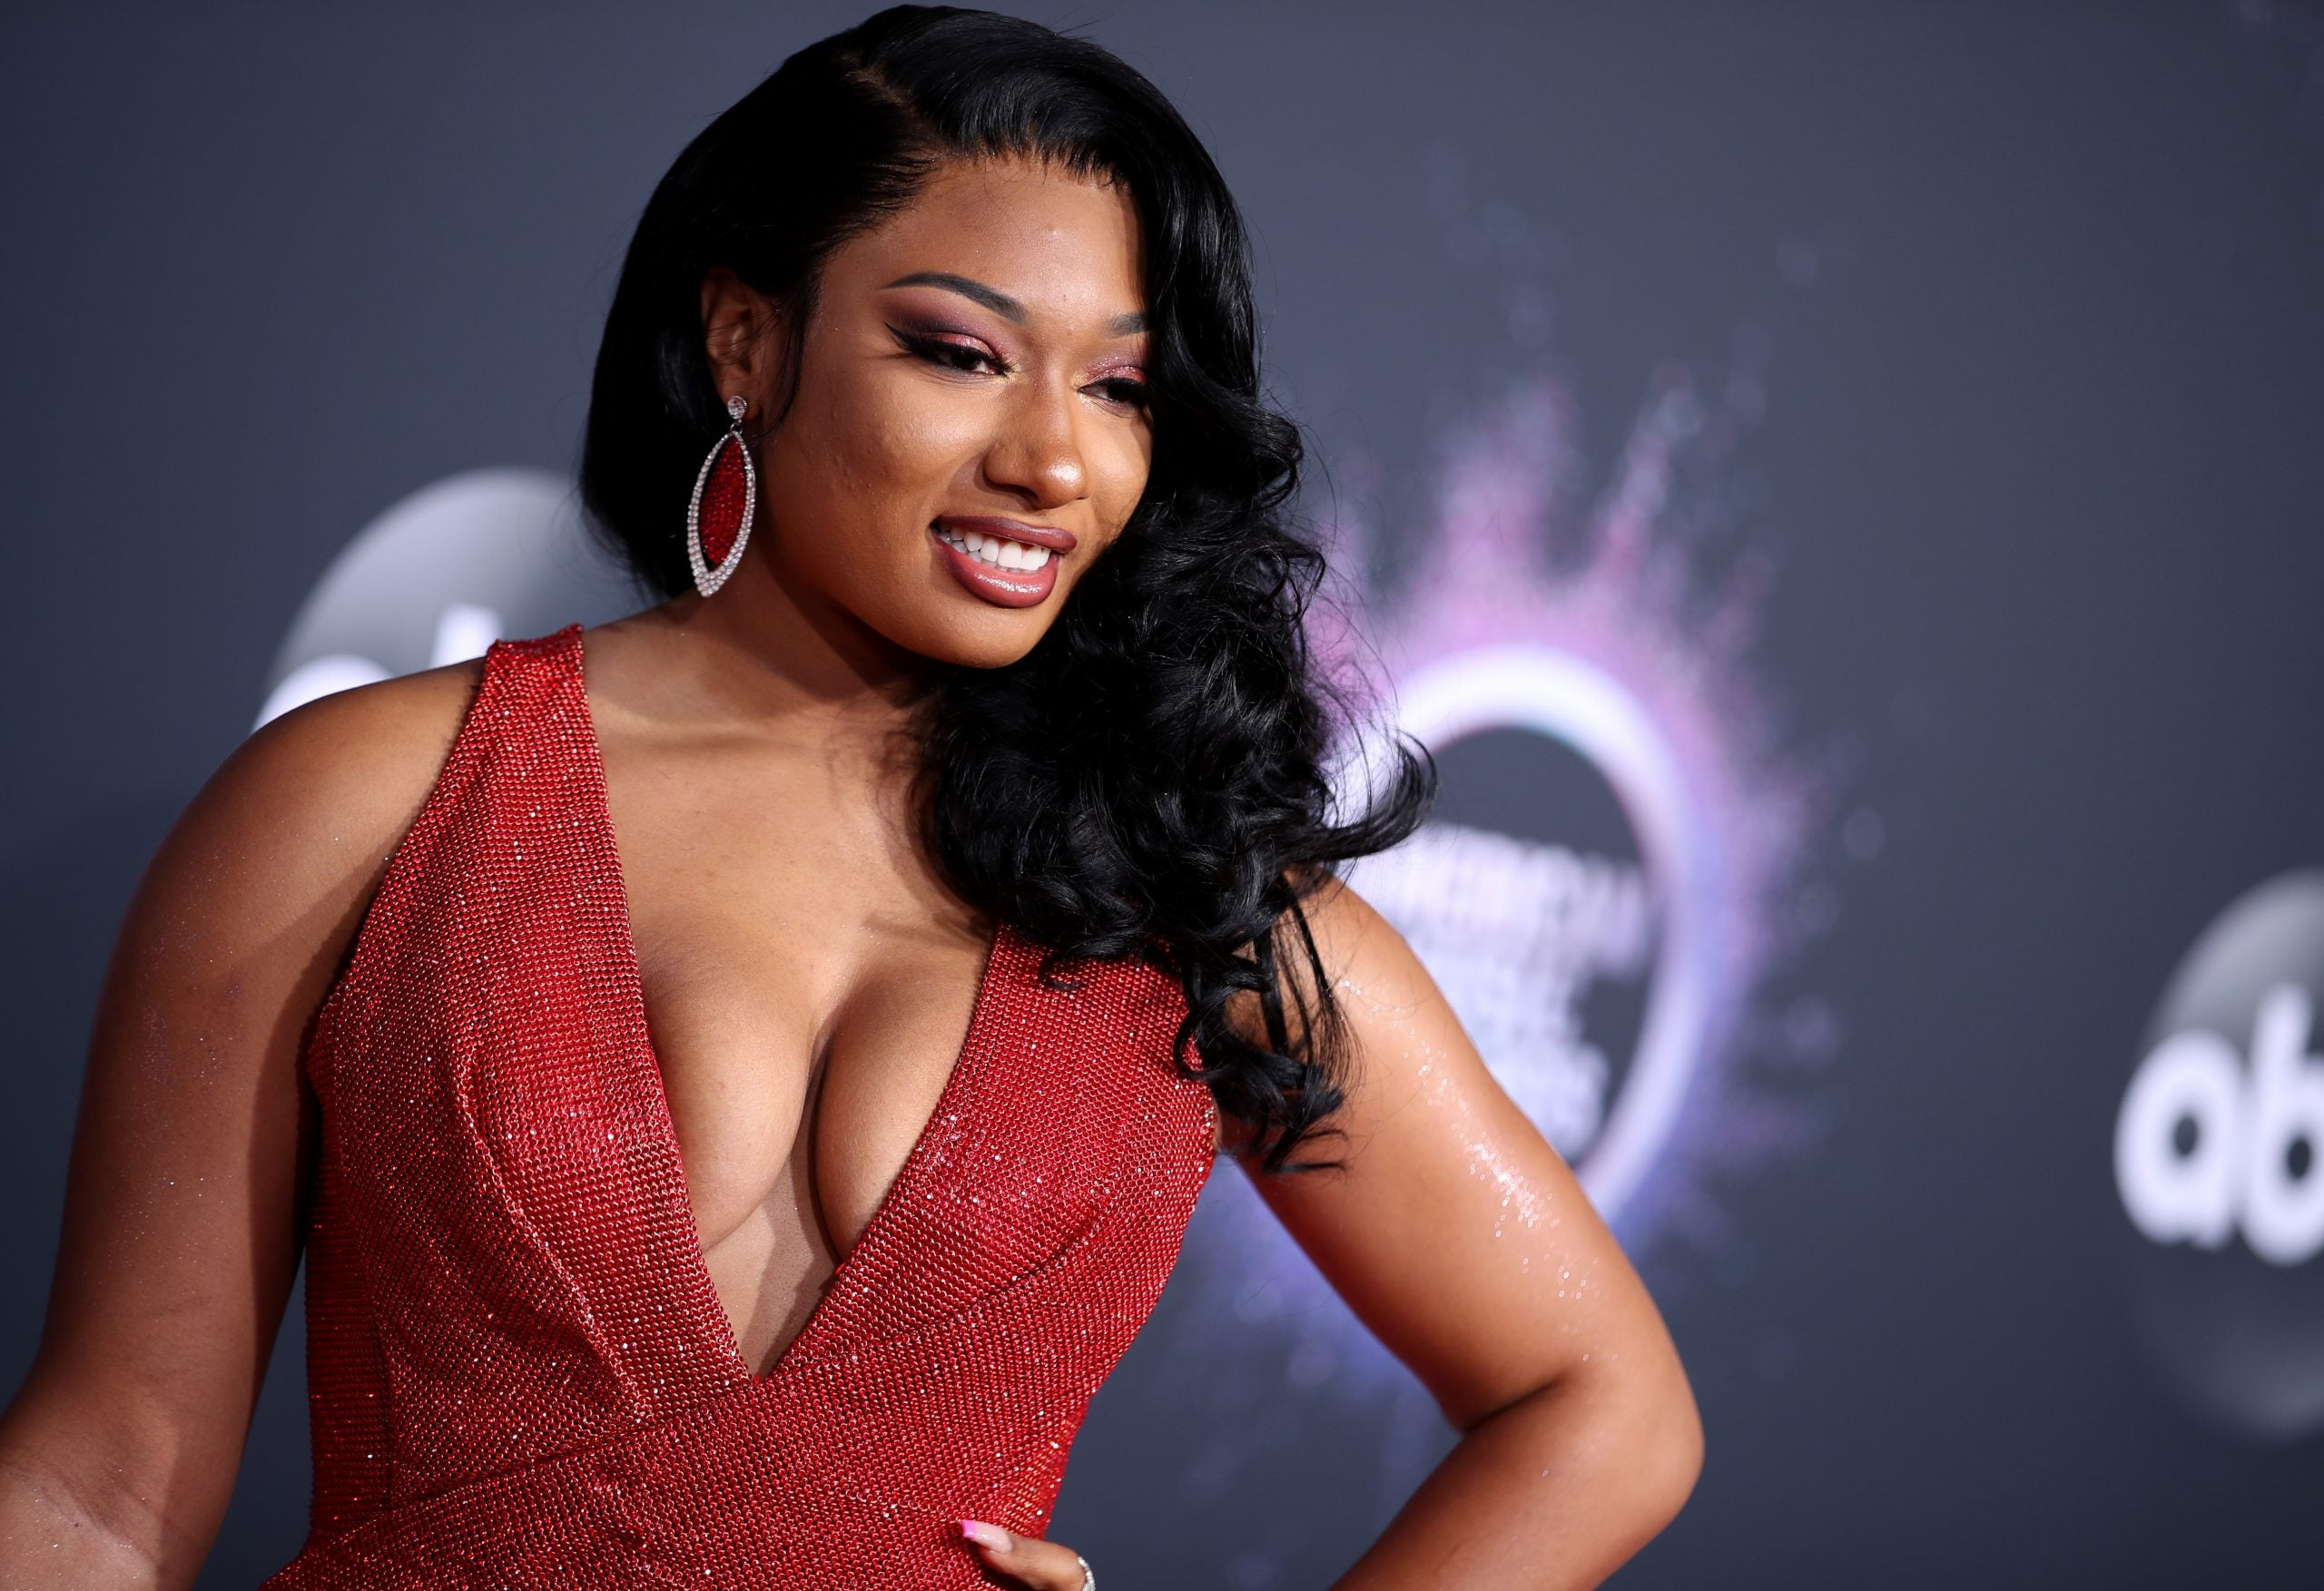 Protect Black Women: Megan Thee Stallion Brings Black Power, Calls For Justice To 'SNL' Stage